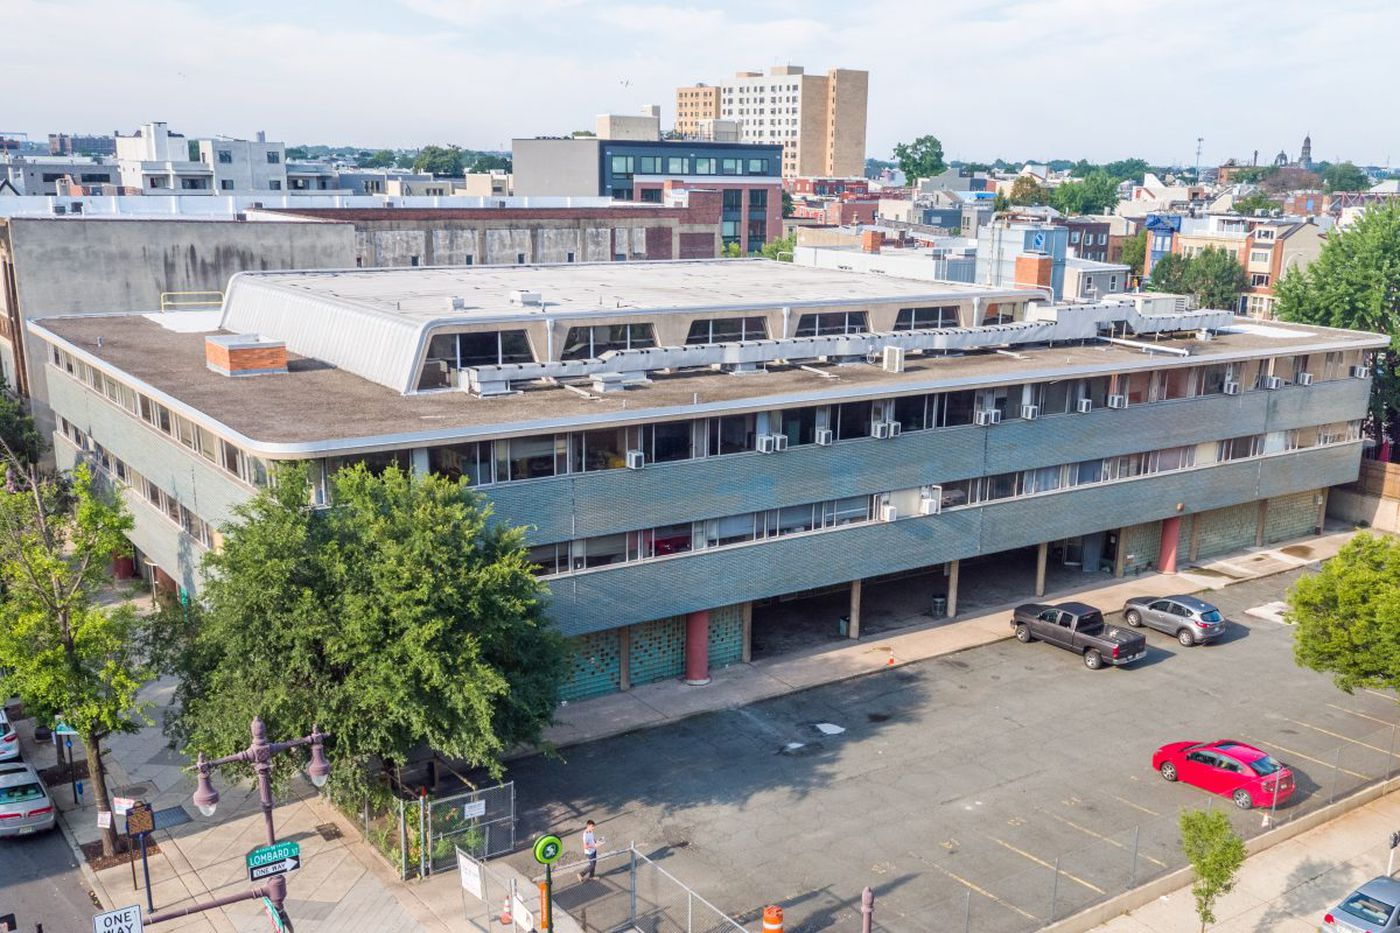 Developer Goldenberg eyeing S. Broad St. health building to solidify control of block